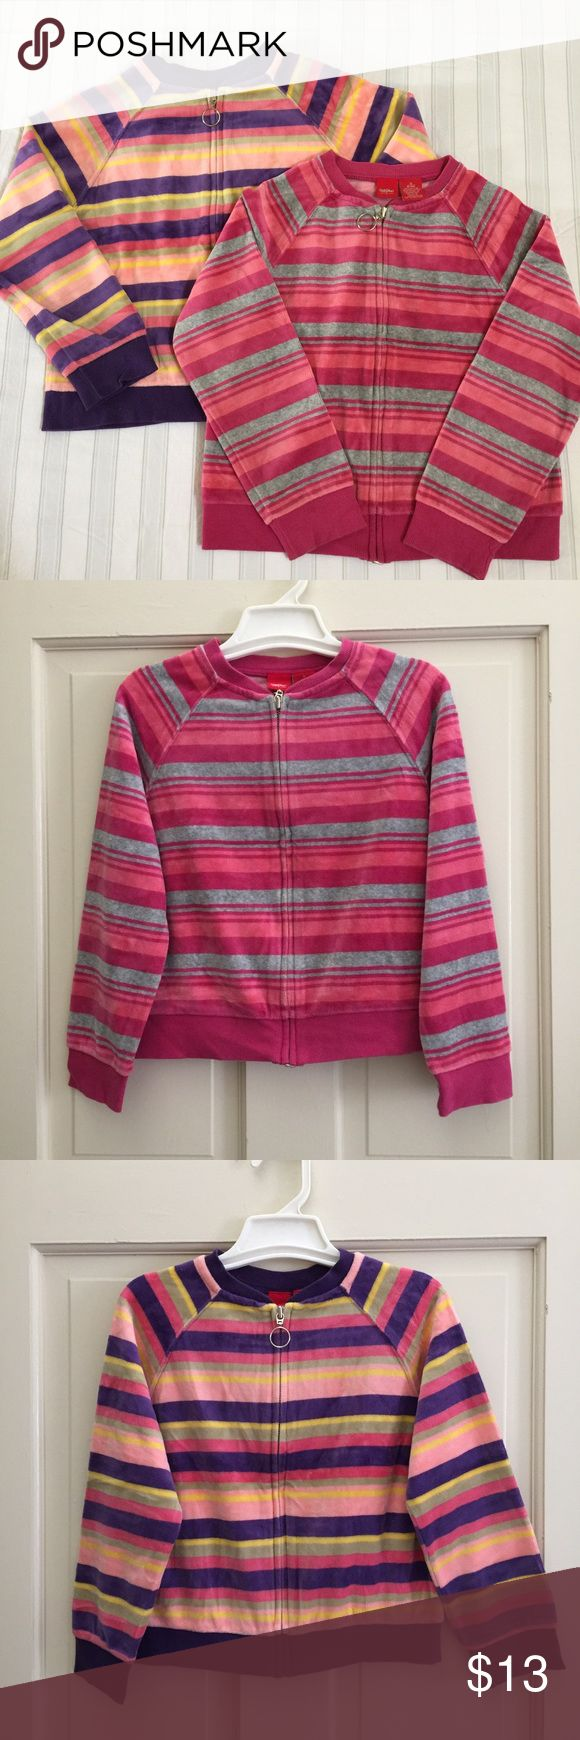 Set of 2 velvet jacket Girls velvet  stripe jacket size S 6/6X, So soft and comfy. no stains or holes good condition Mossimo Supply Co Jackets & Coats